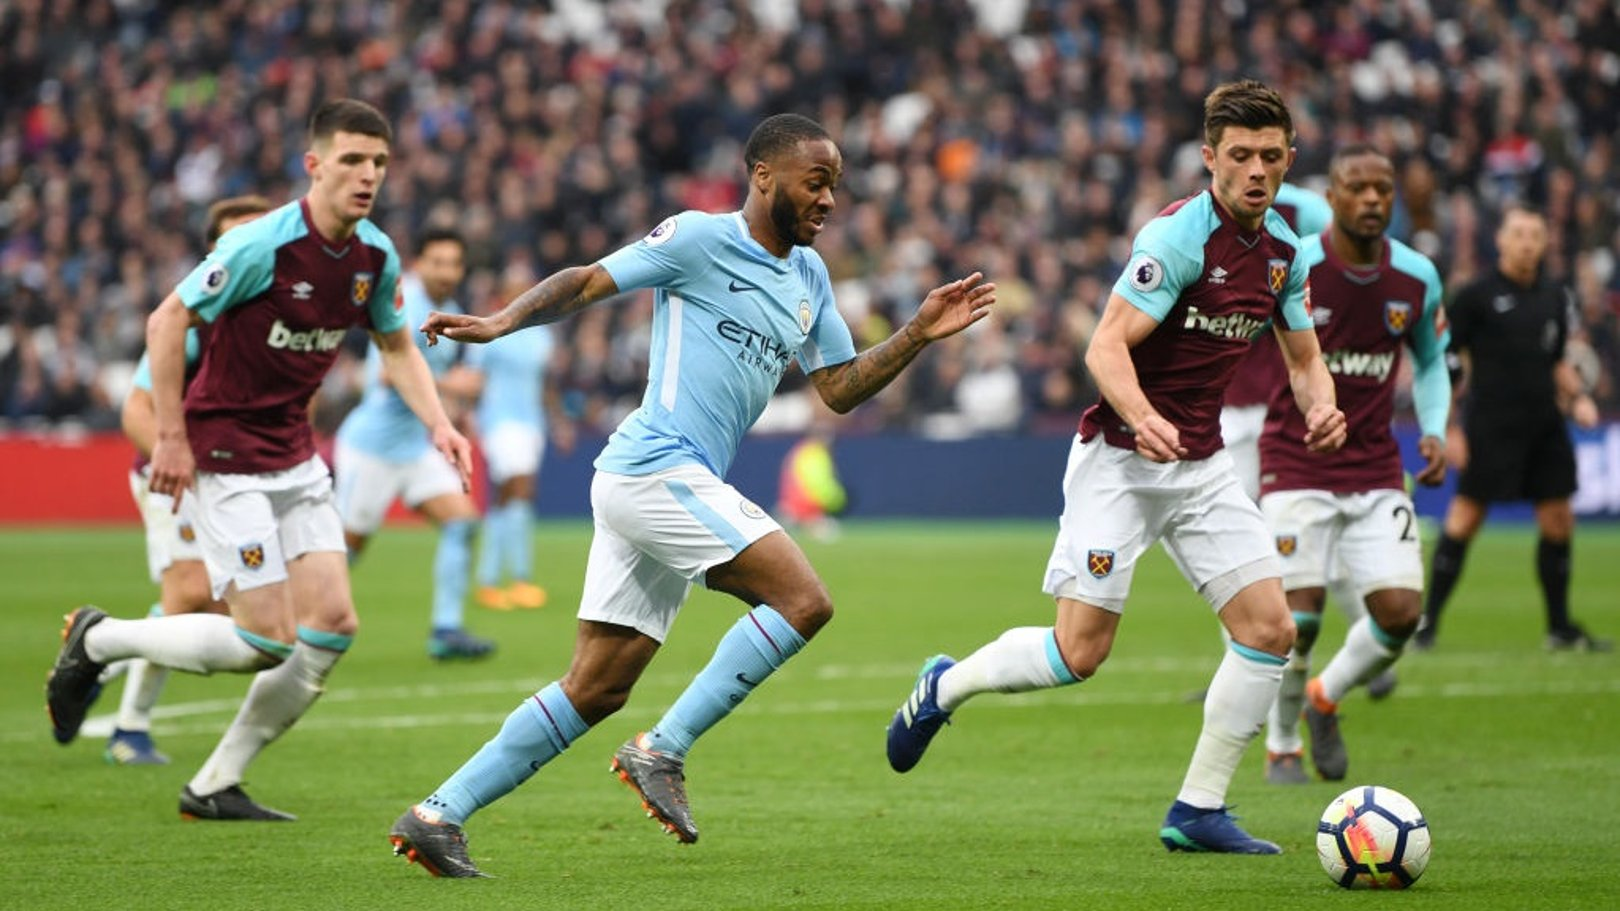 INFLUENCER: There were two assists in ten minutes from Raheem Sterling.